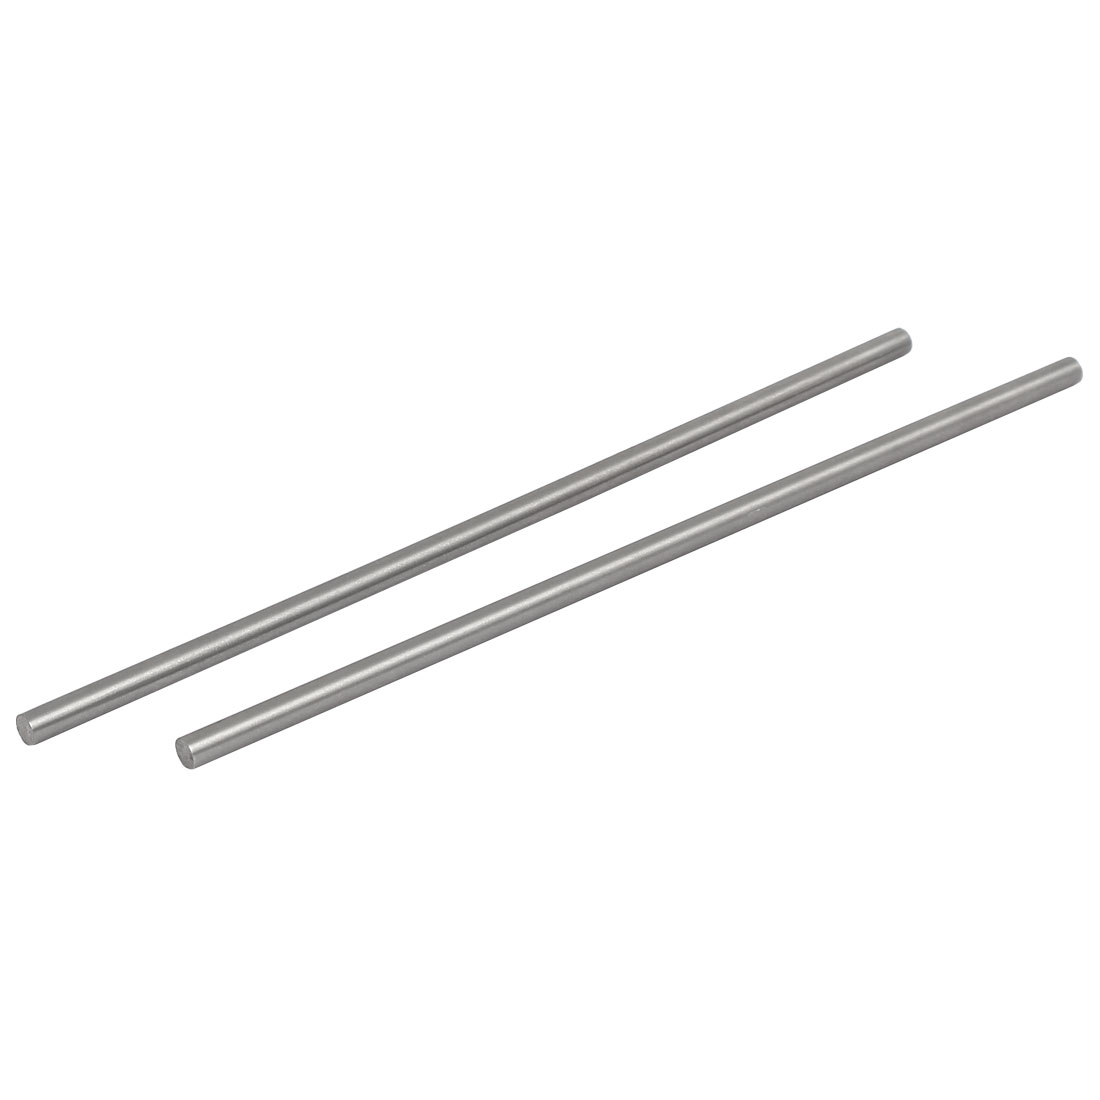 5mm Dia 200mm Length HSS Round Shaft Rod Bar Lathe Tools Gray 2pcs